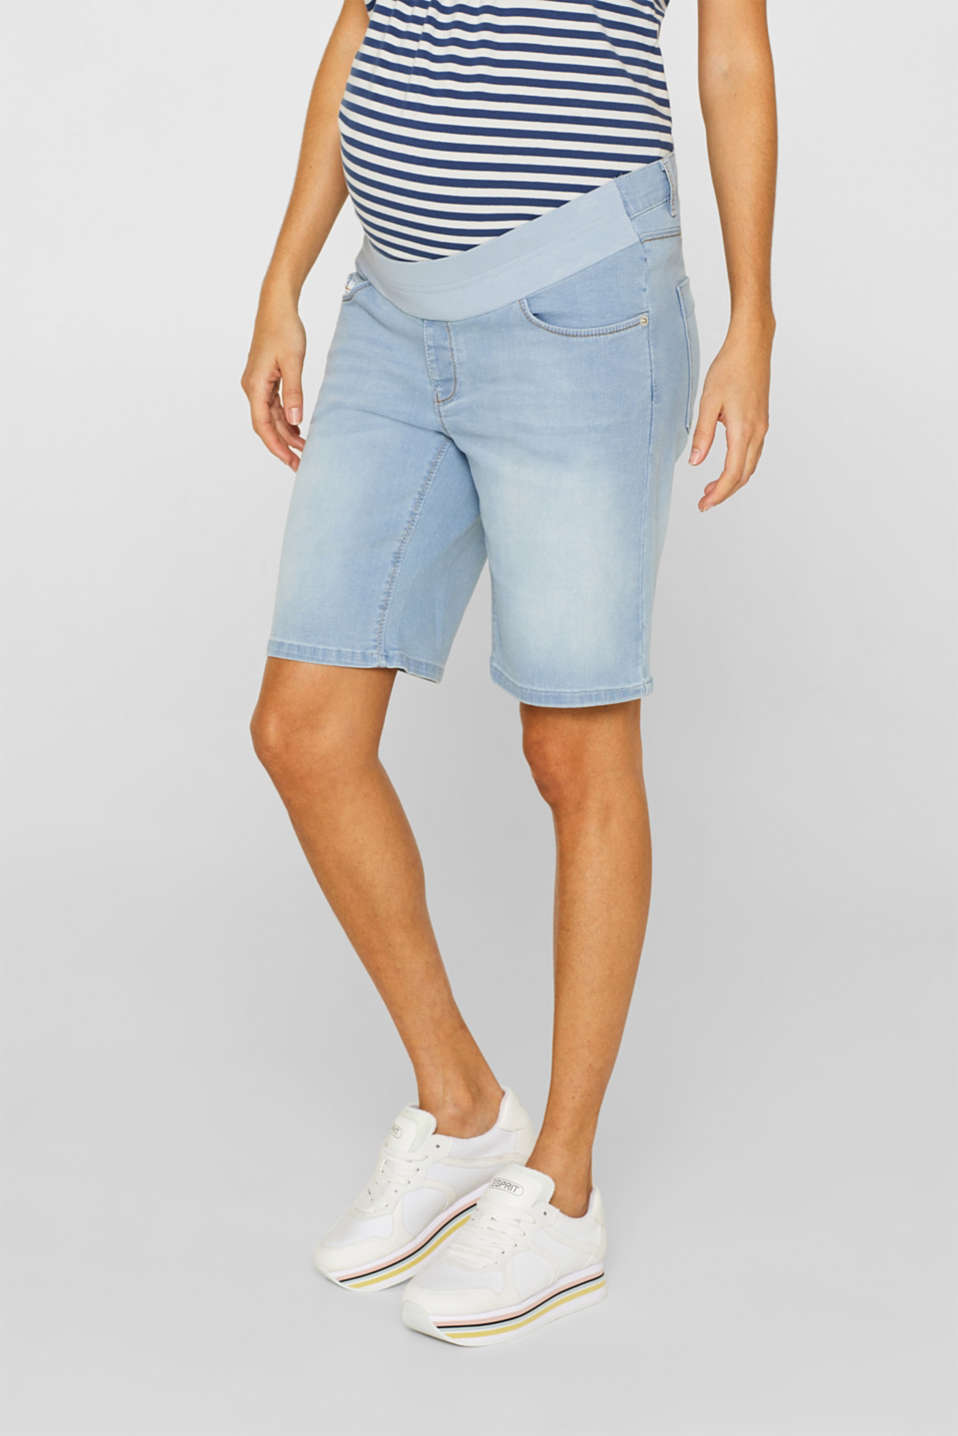 Stretch denim Bermudas with an under-bump waistband, LCLIGHTWASH, detail image number 6